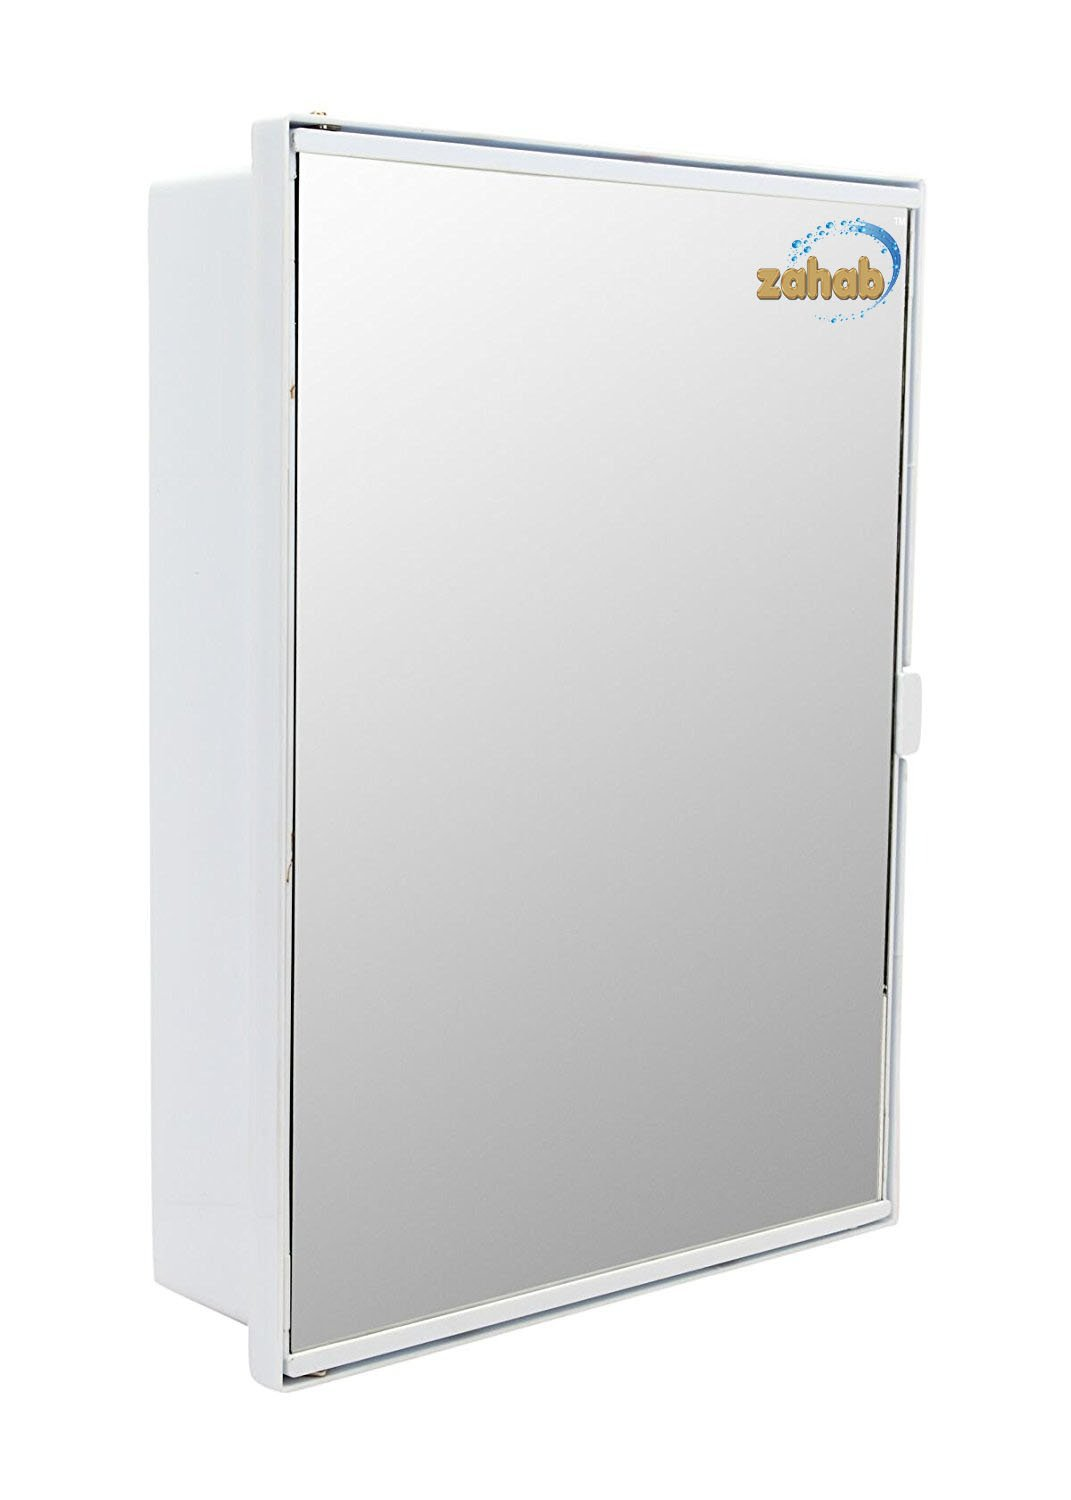 Buy Zahab Duster Single Door Plastic Cabinet White Online At Low Prices In  India  Amazon